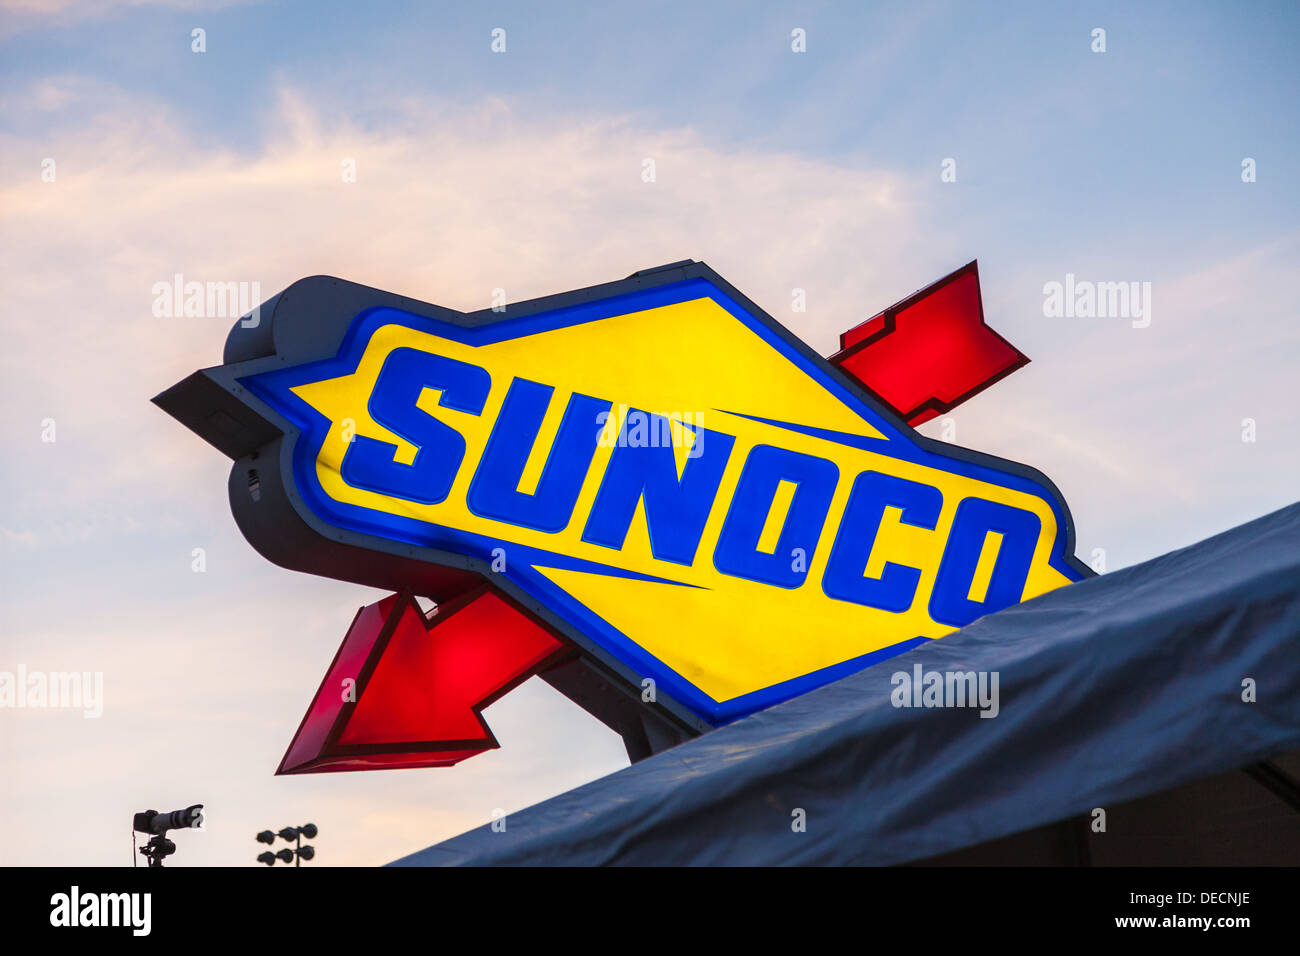 Sunoco fuel sign at Daytona International Speedway during the 2012 Rolex 24 at Daytona, Florida - Stock Image